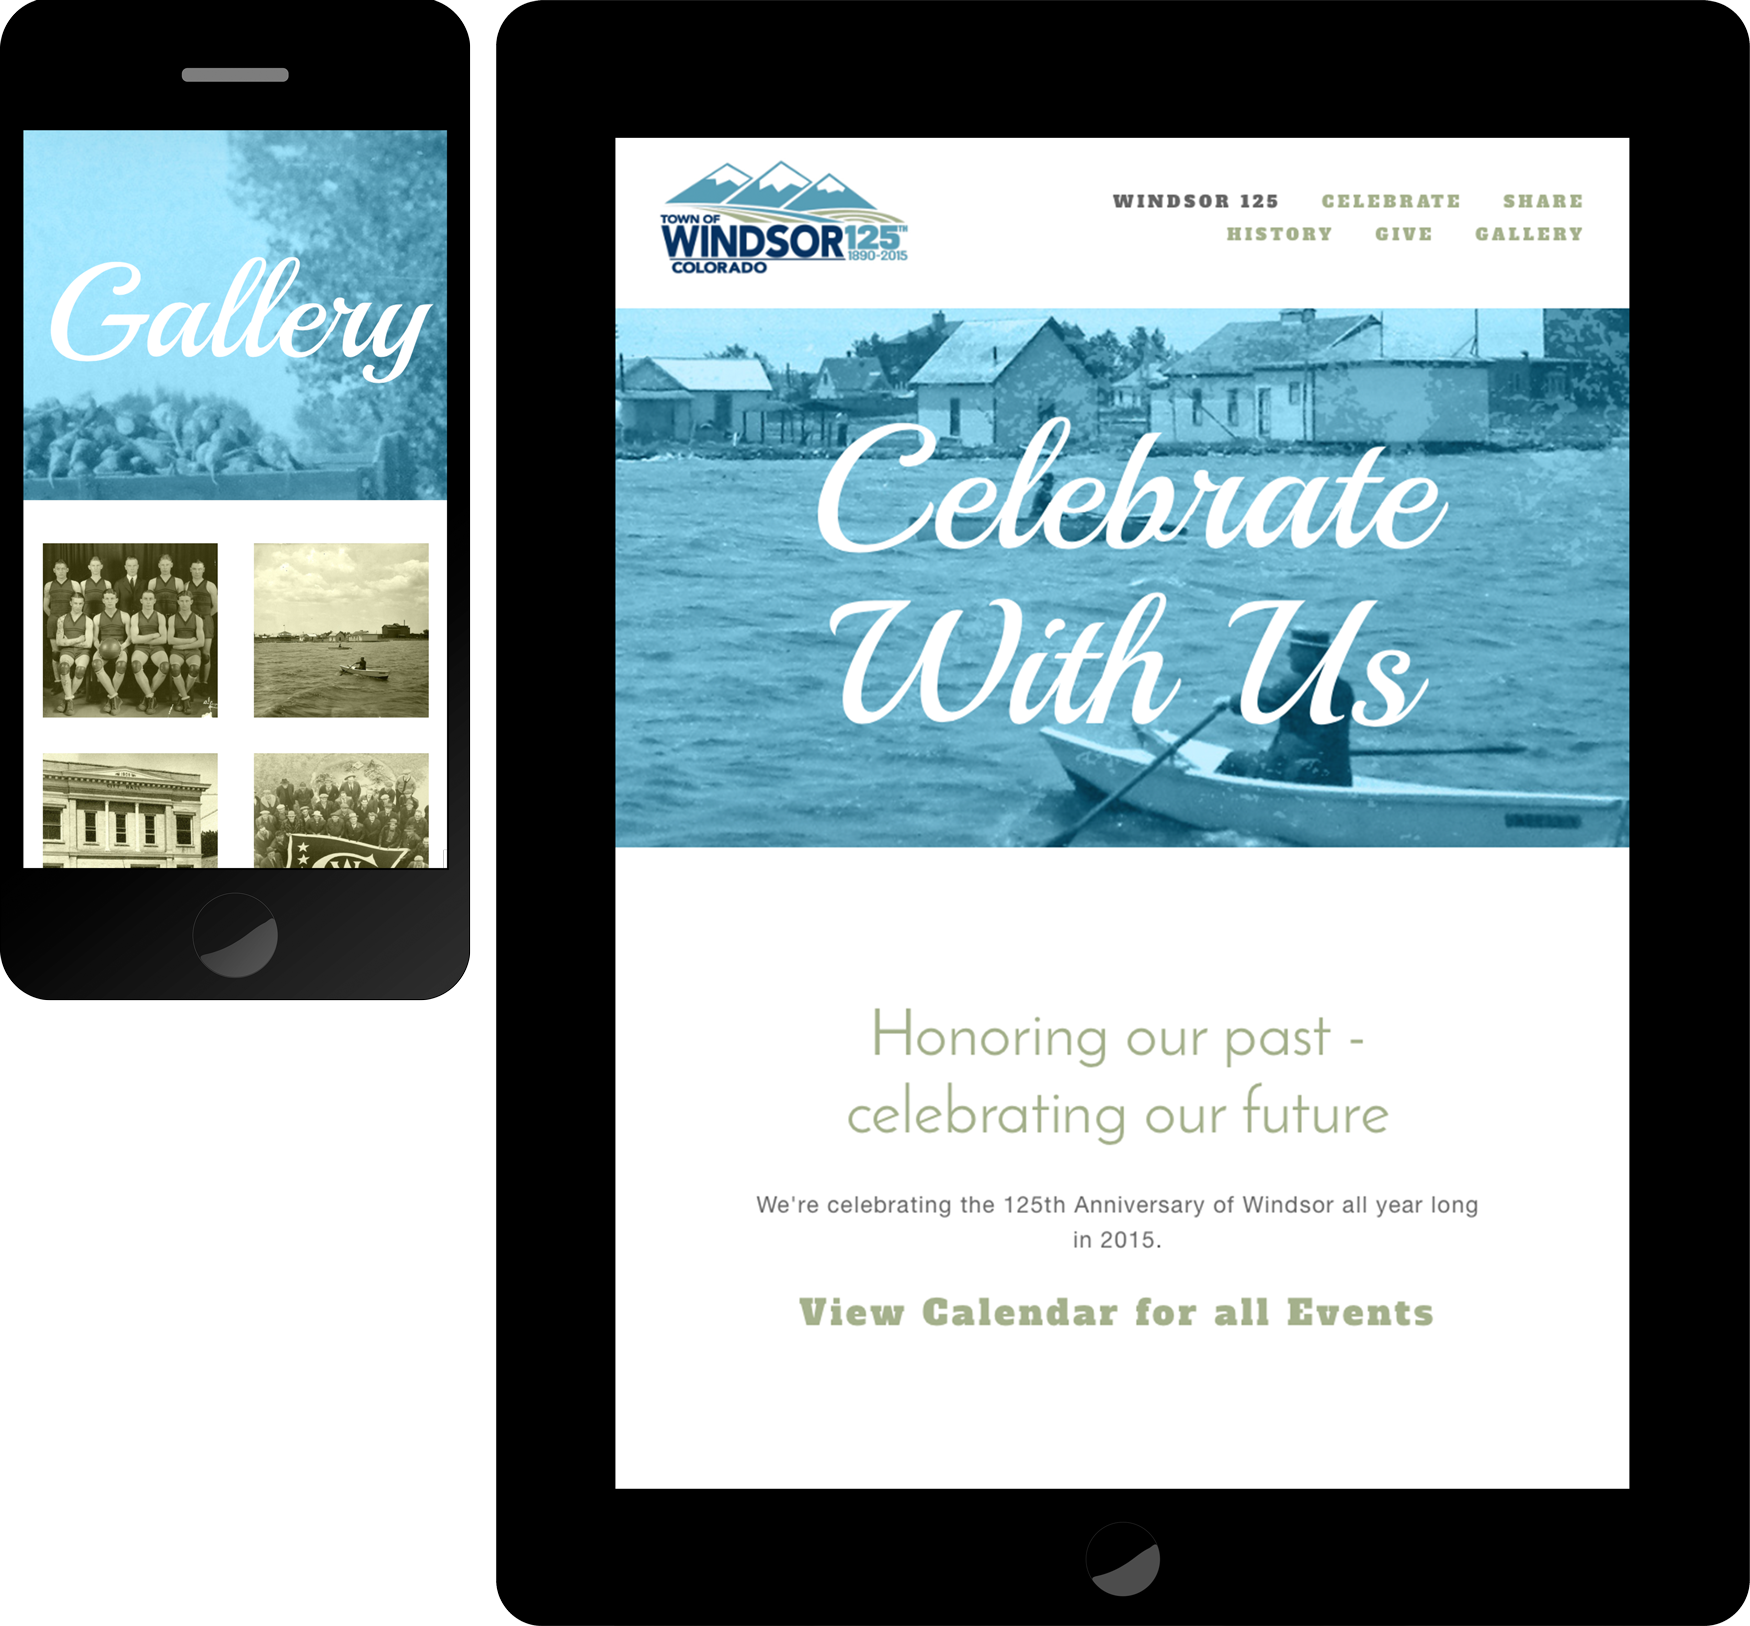 Town of windsor 125th anniversary celebration mobile-friendly website